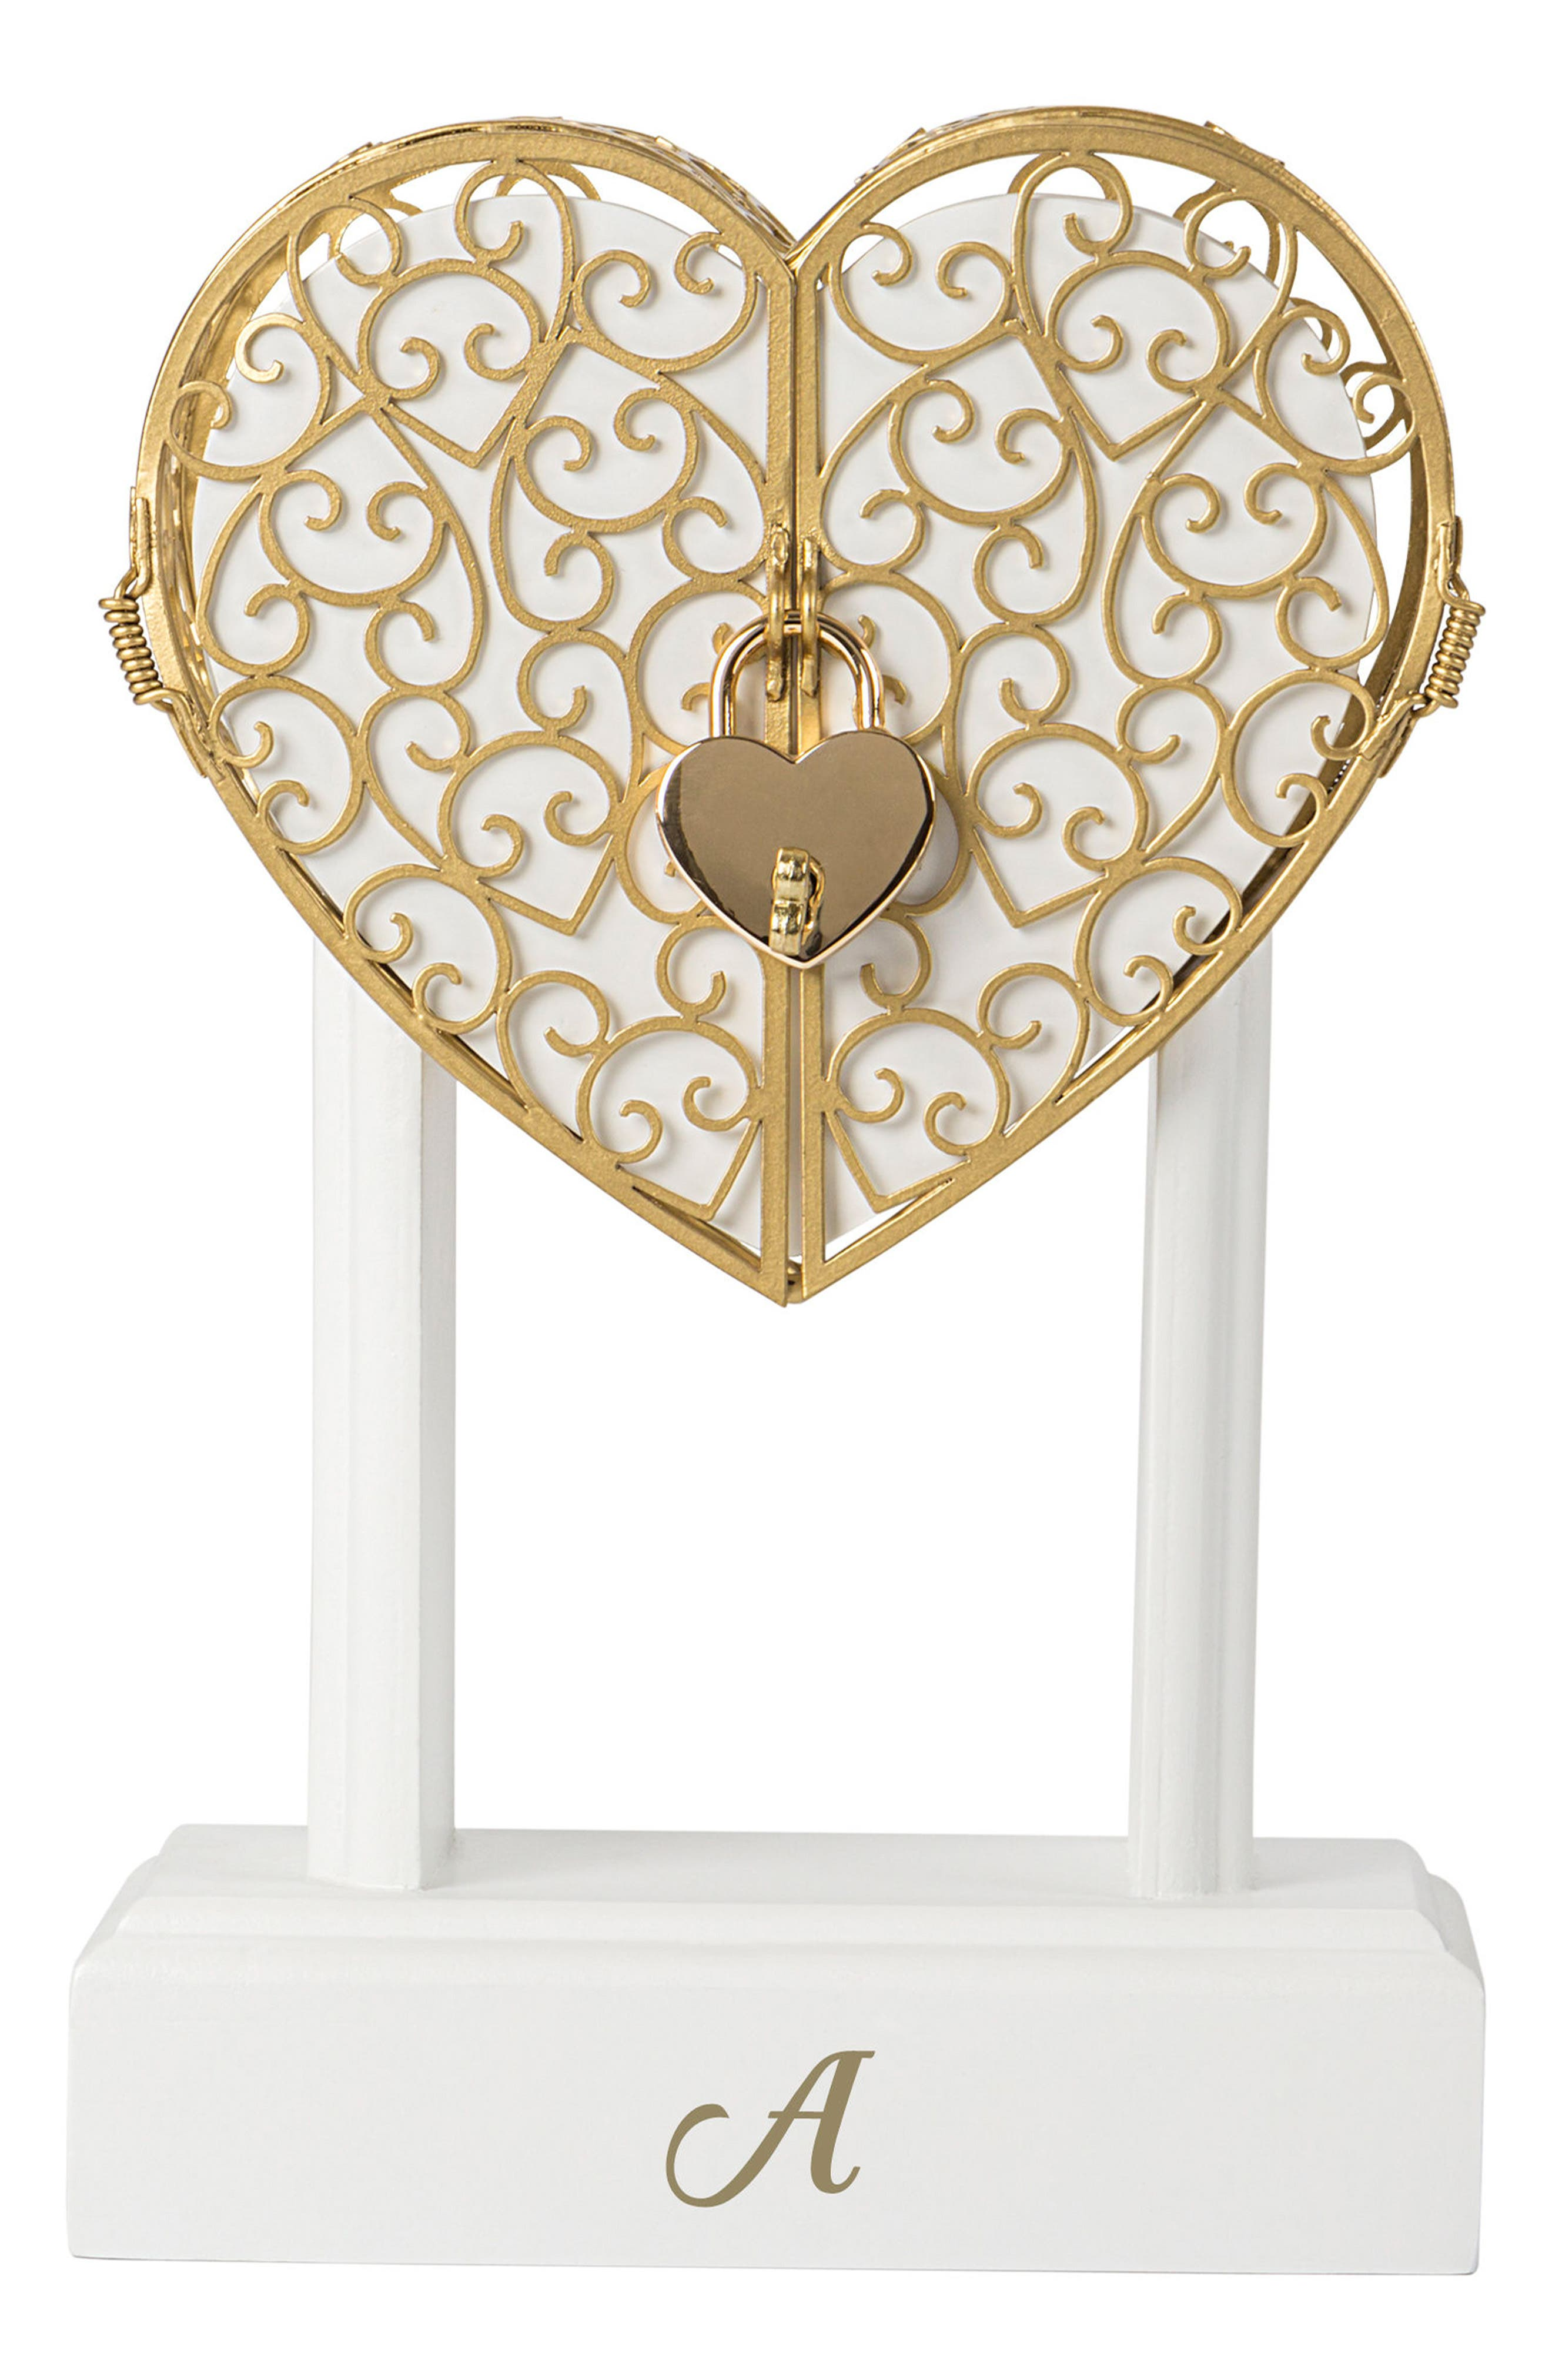 Key To My Heart Monogram Vow Unity Keepsake Box,                         Main,                         color, Gold - A